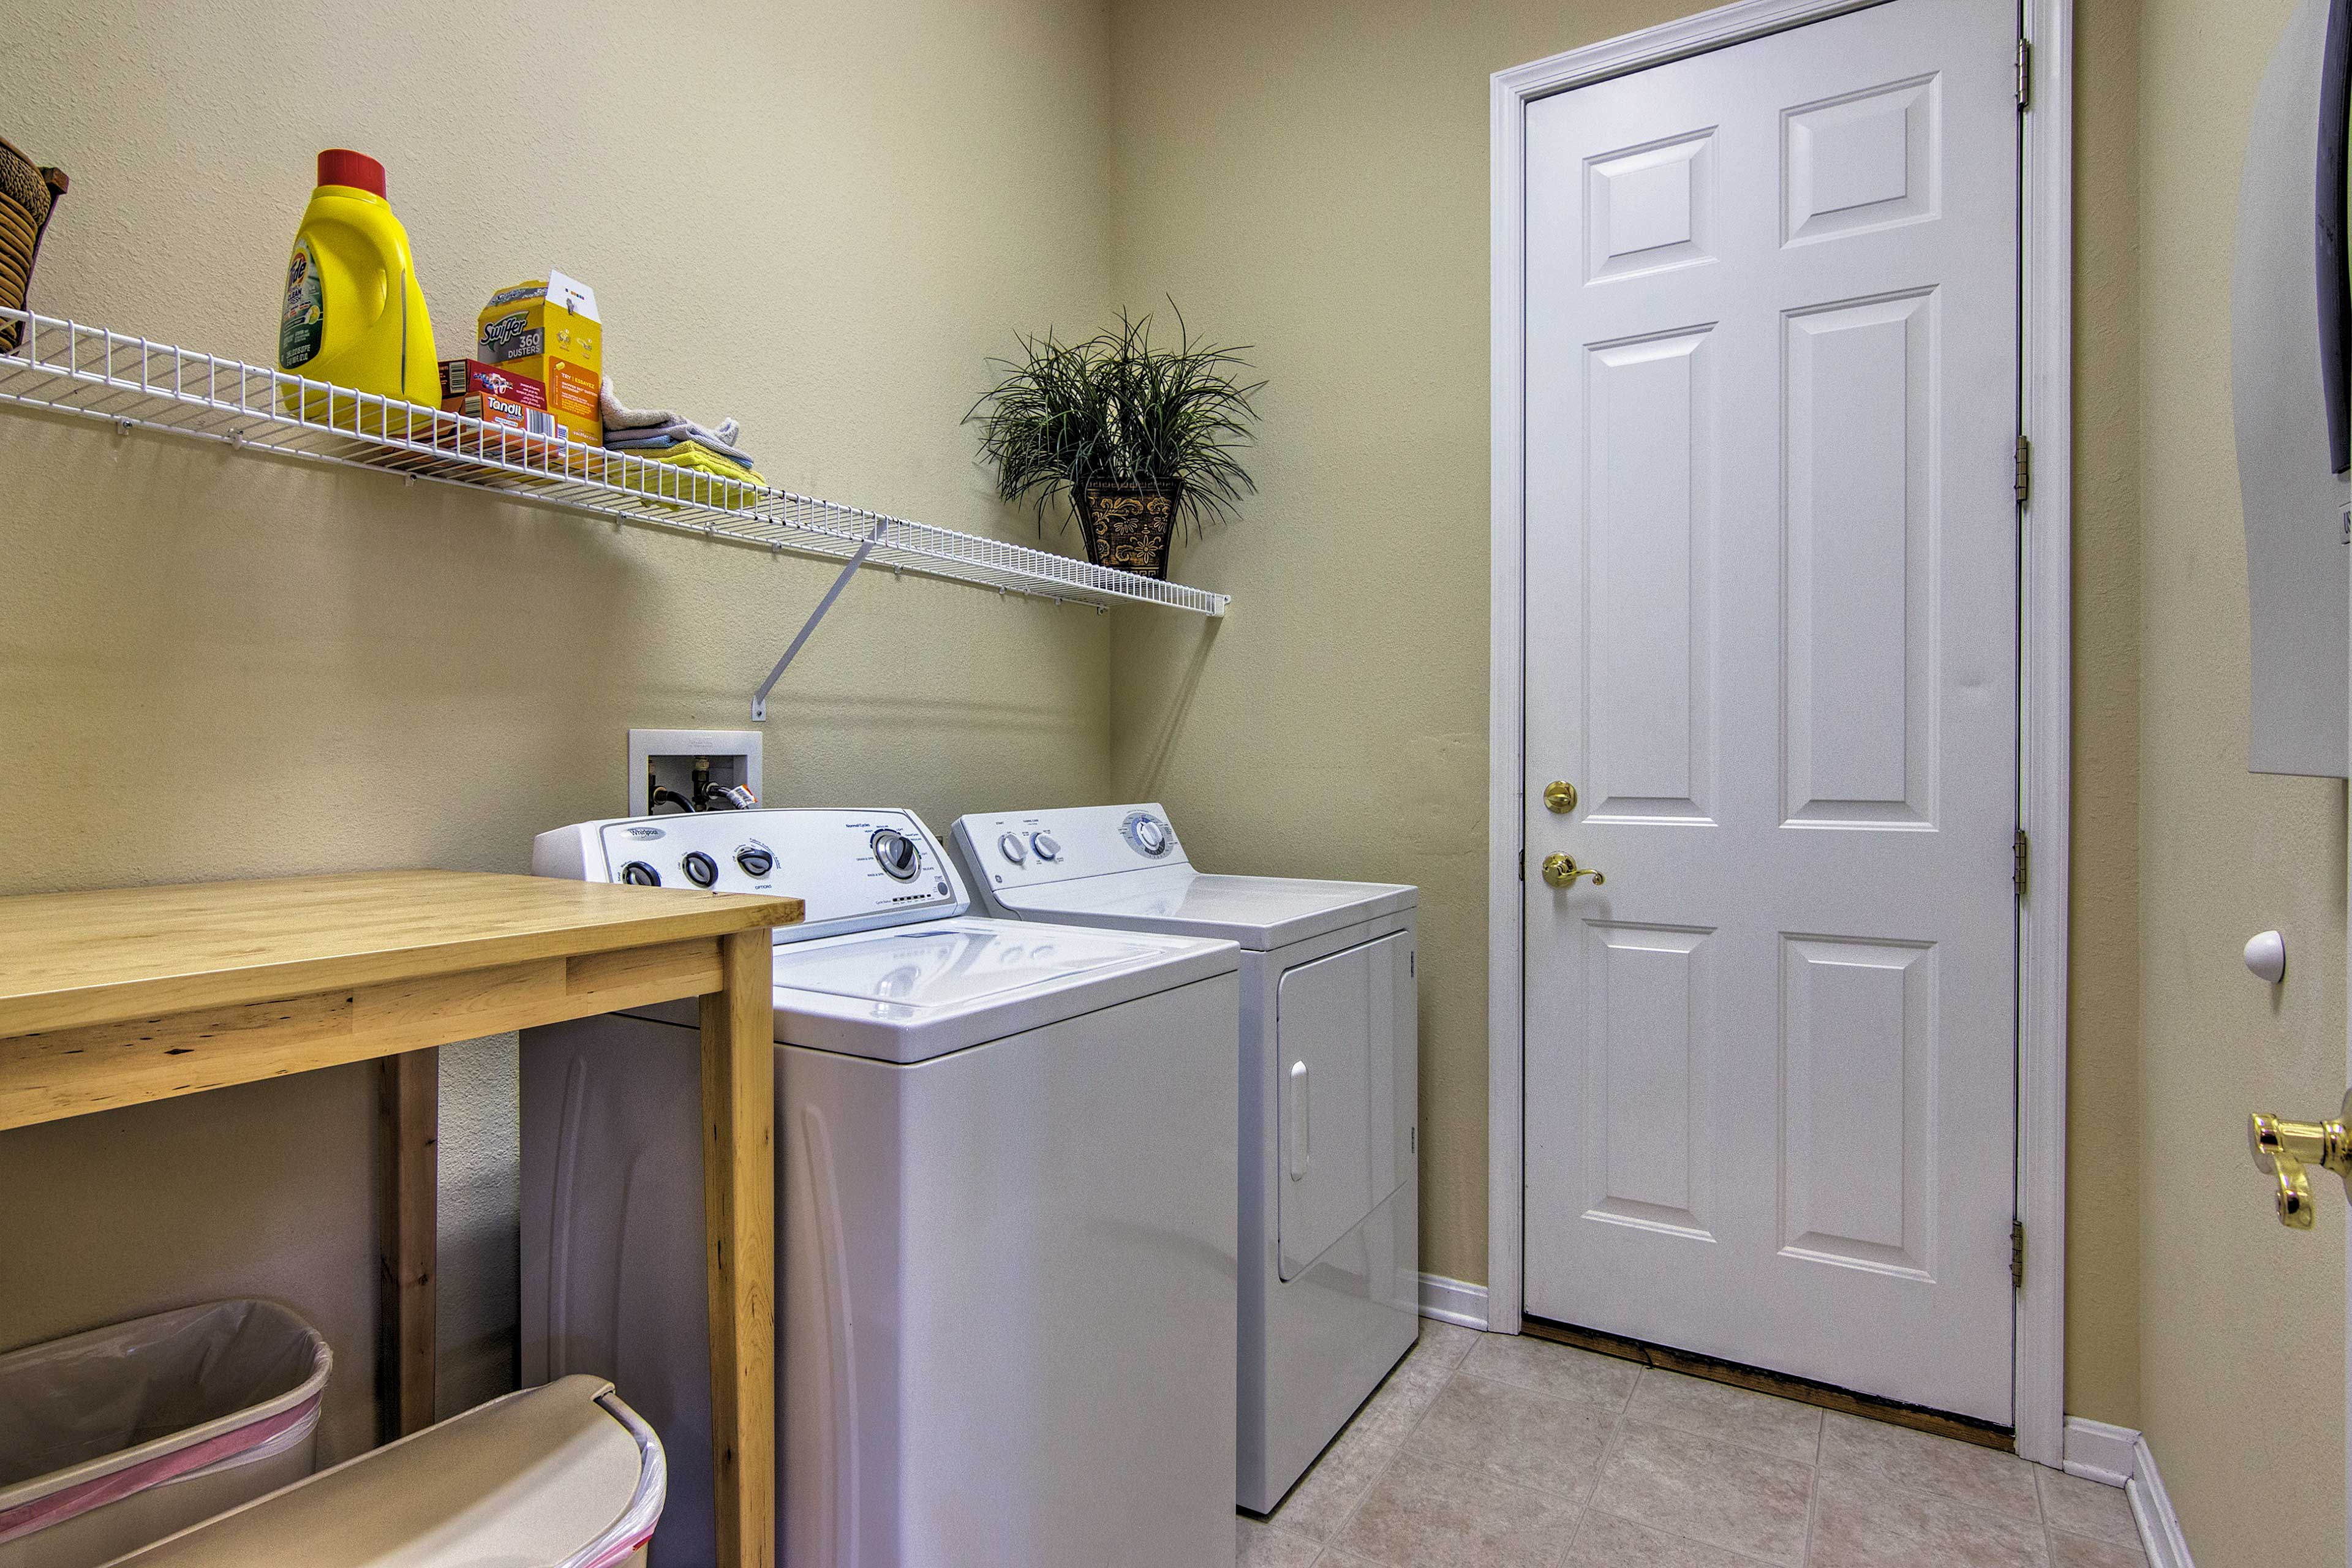 Keep your bathing suits and beach clothes clean with the washer and dryer.